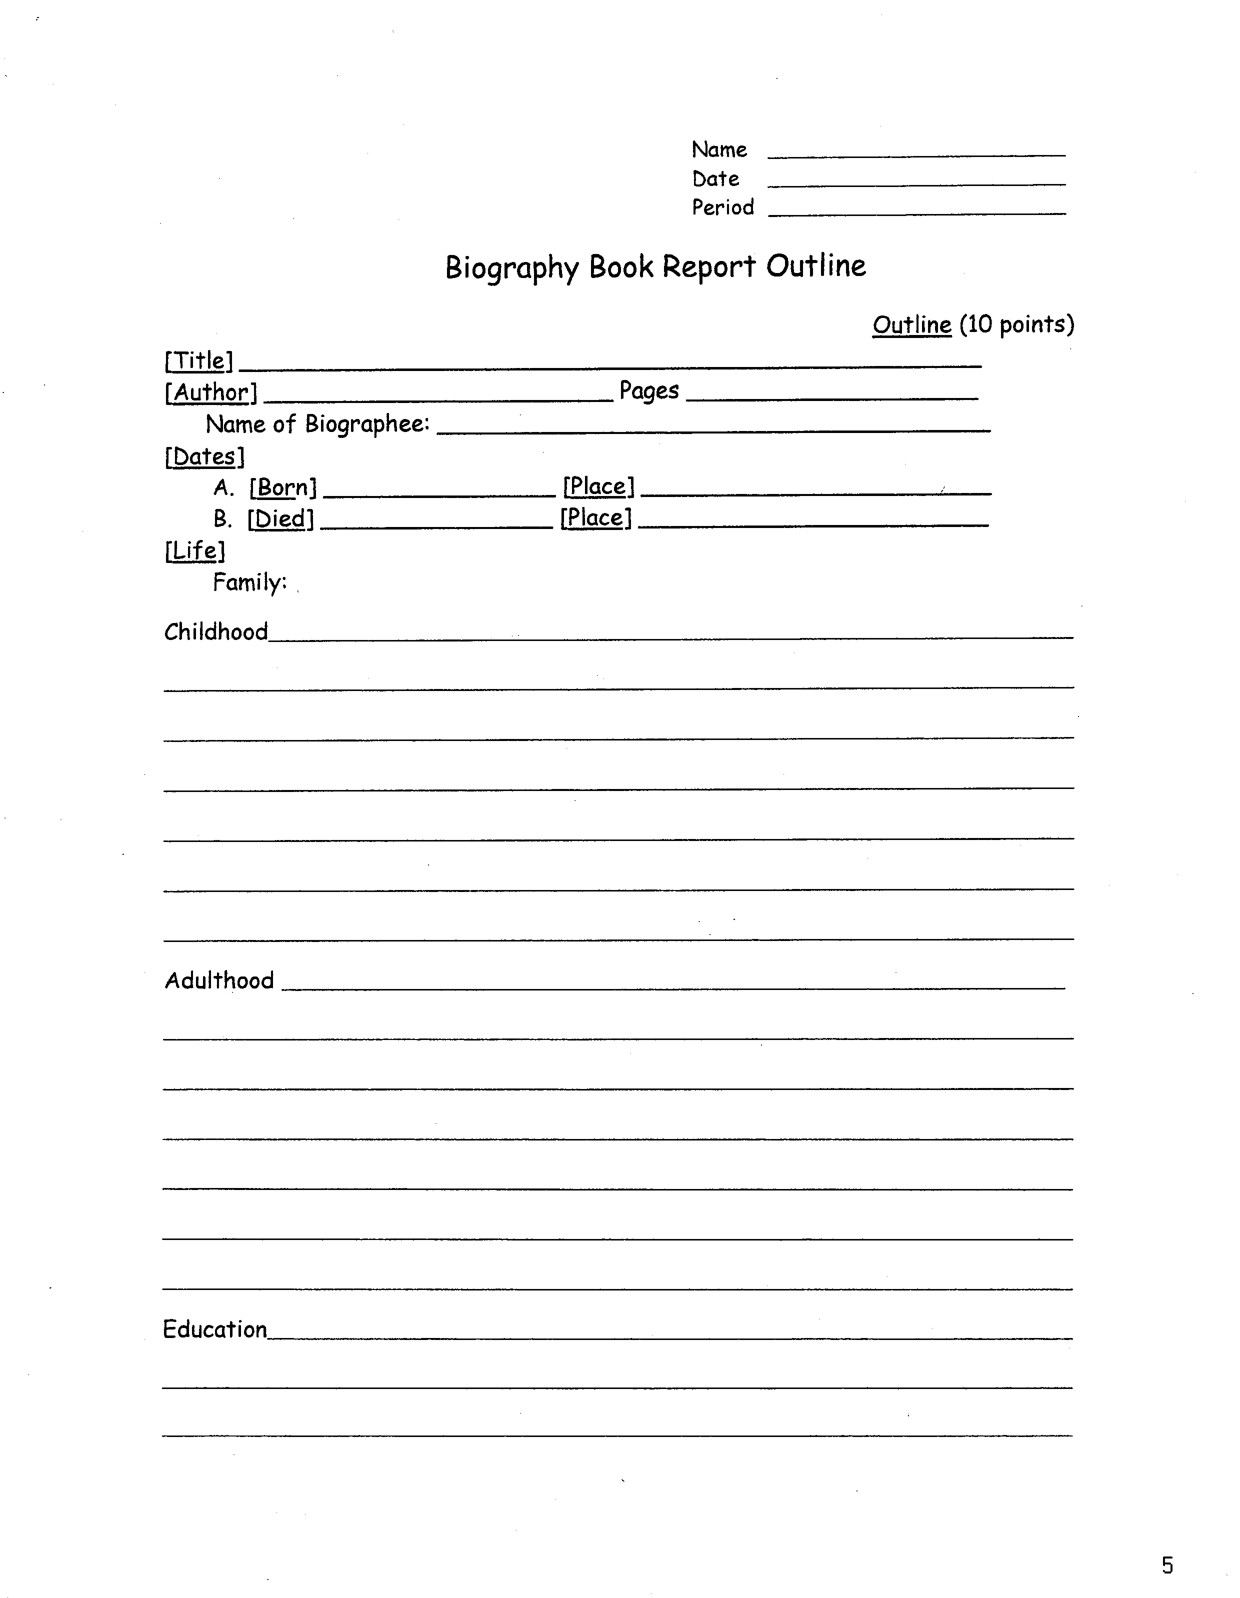 Biography Book Report Template Biography Book Report Outline Amanda Project